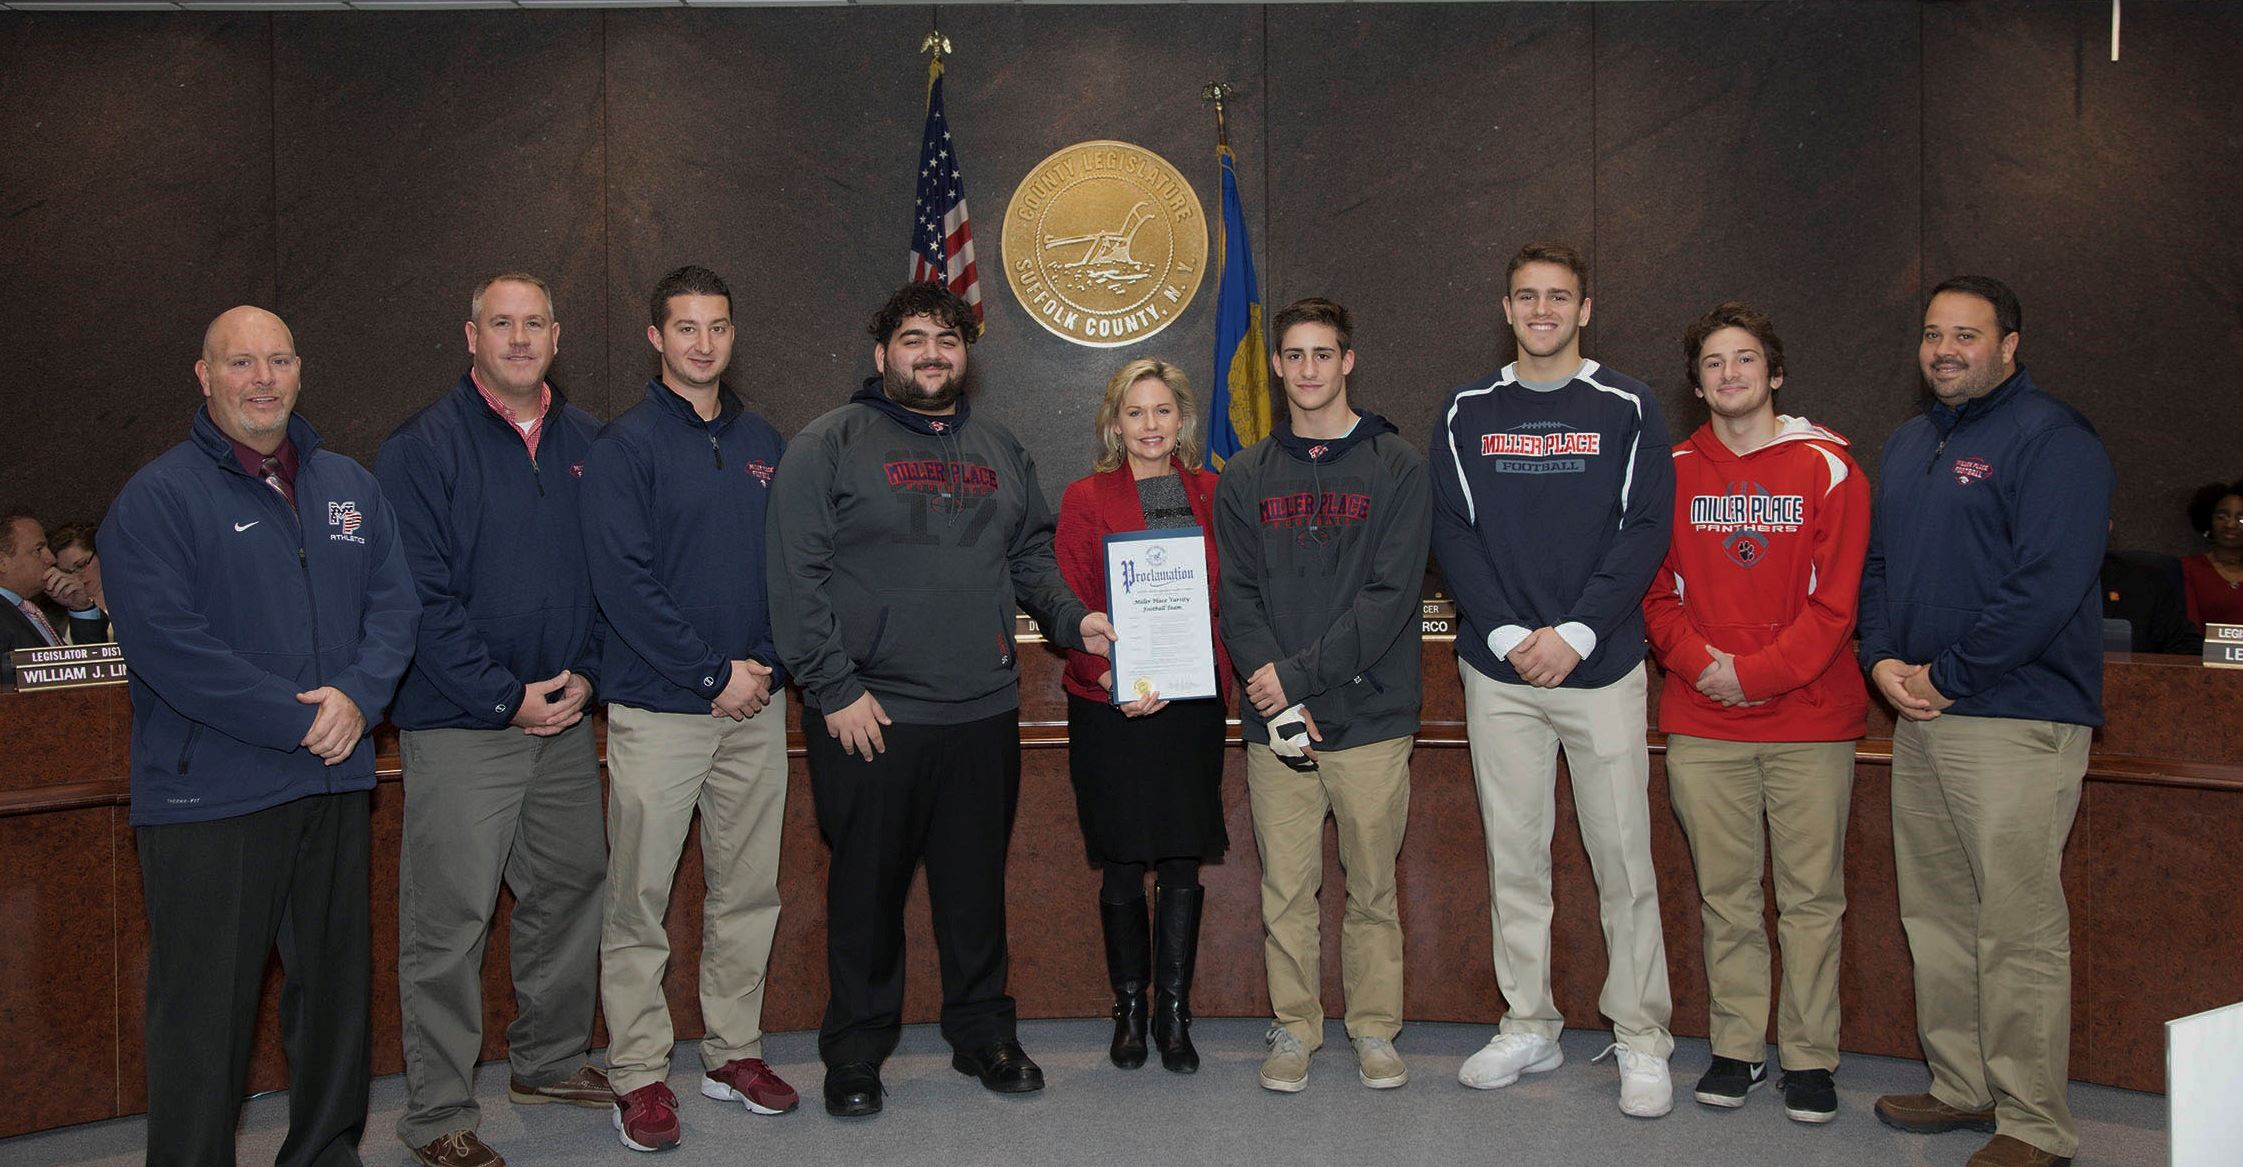 Members of the Miller Place Football Team were honored with a proclamation from Legislator Anker.